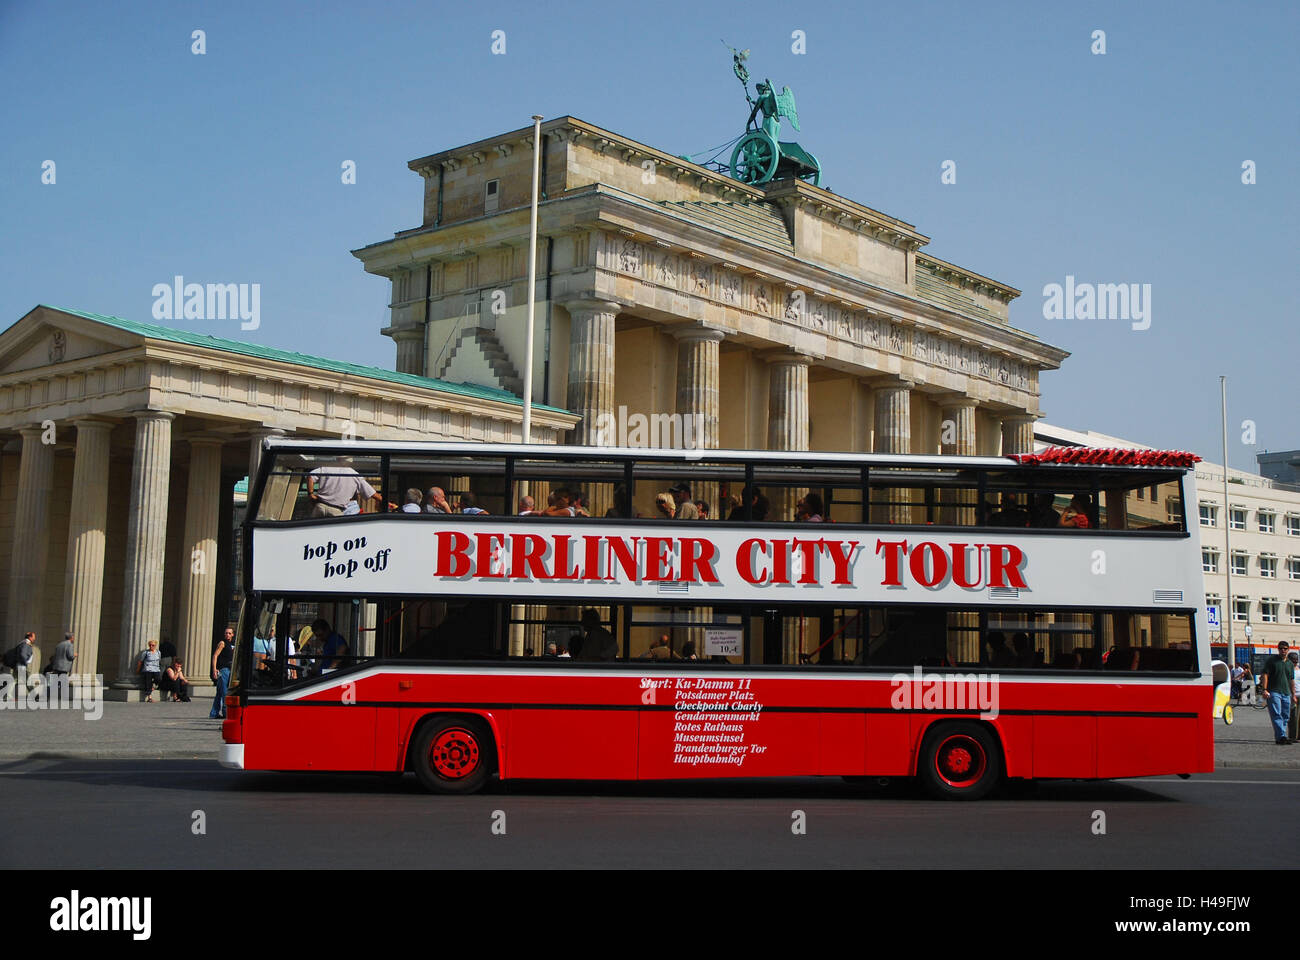 germany berlin the brandenburg gate sightseeing bus capital stock photo 123141057 alamy. Black Bedroom Furniture Sets. Home Design Ideas